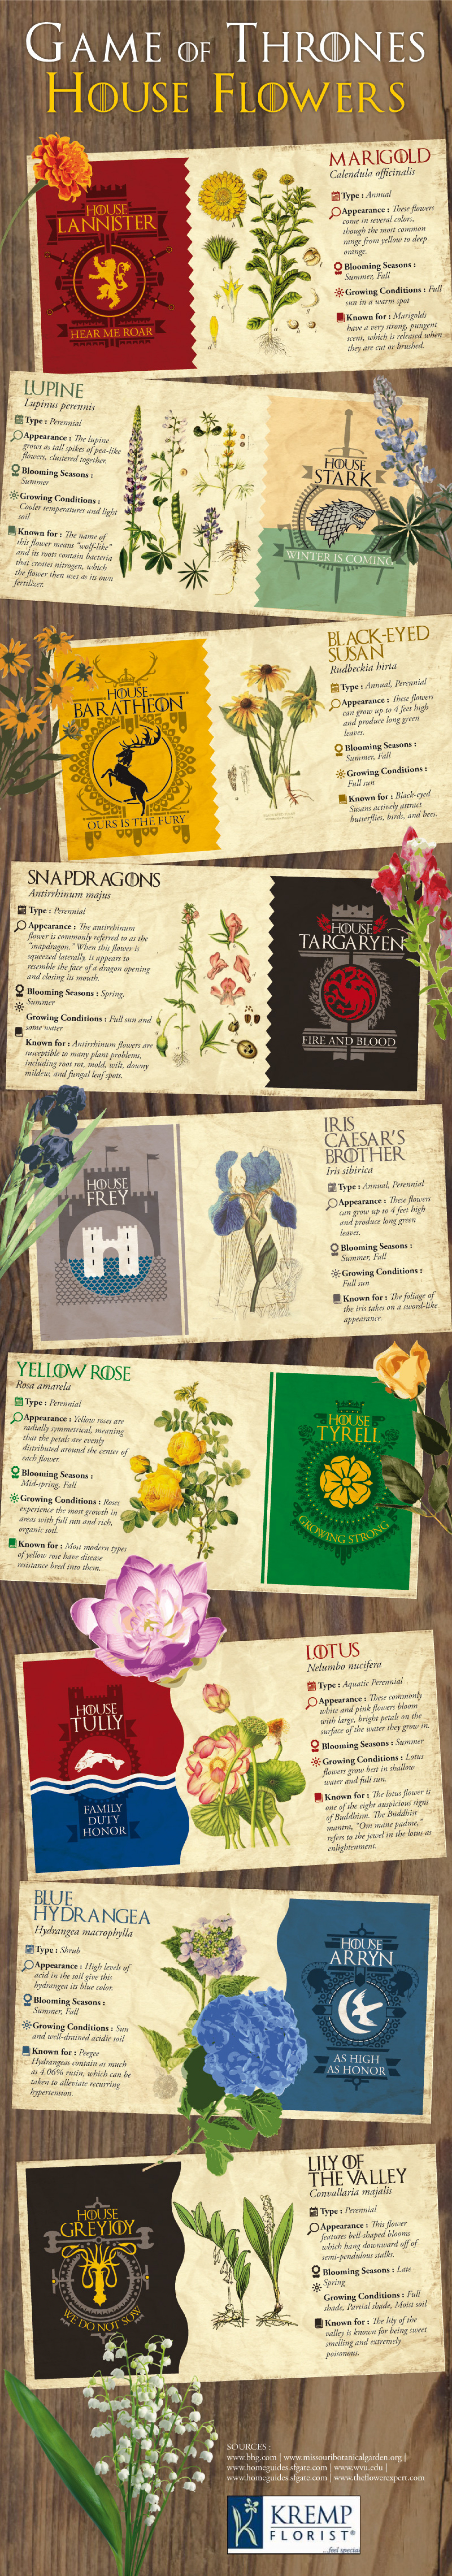 Game of thrones house flowers visual game of thrones house flowers infographic izmirmasajfo Image collections